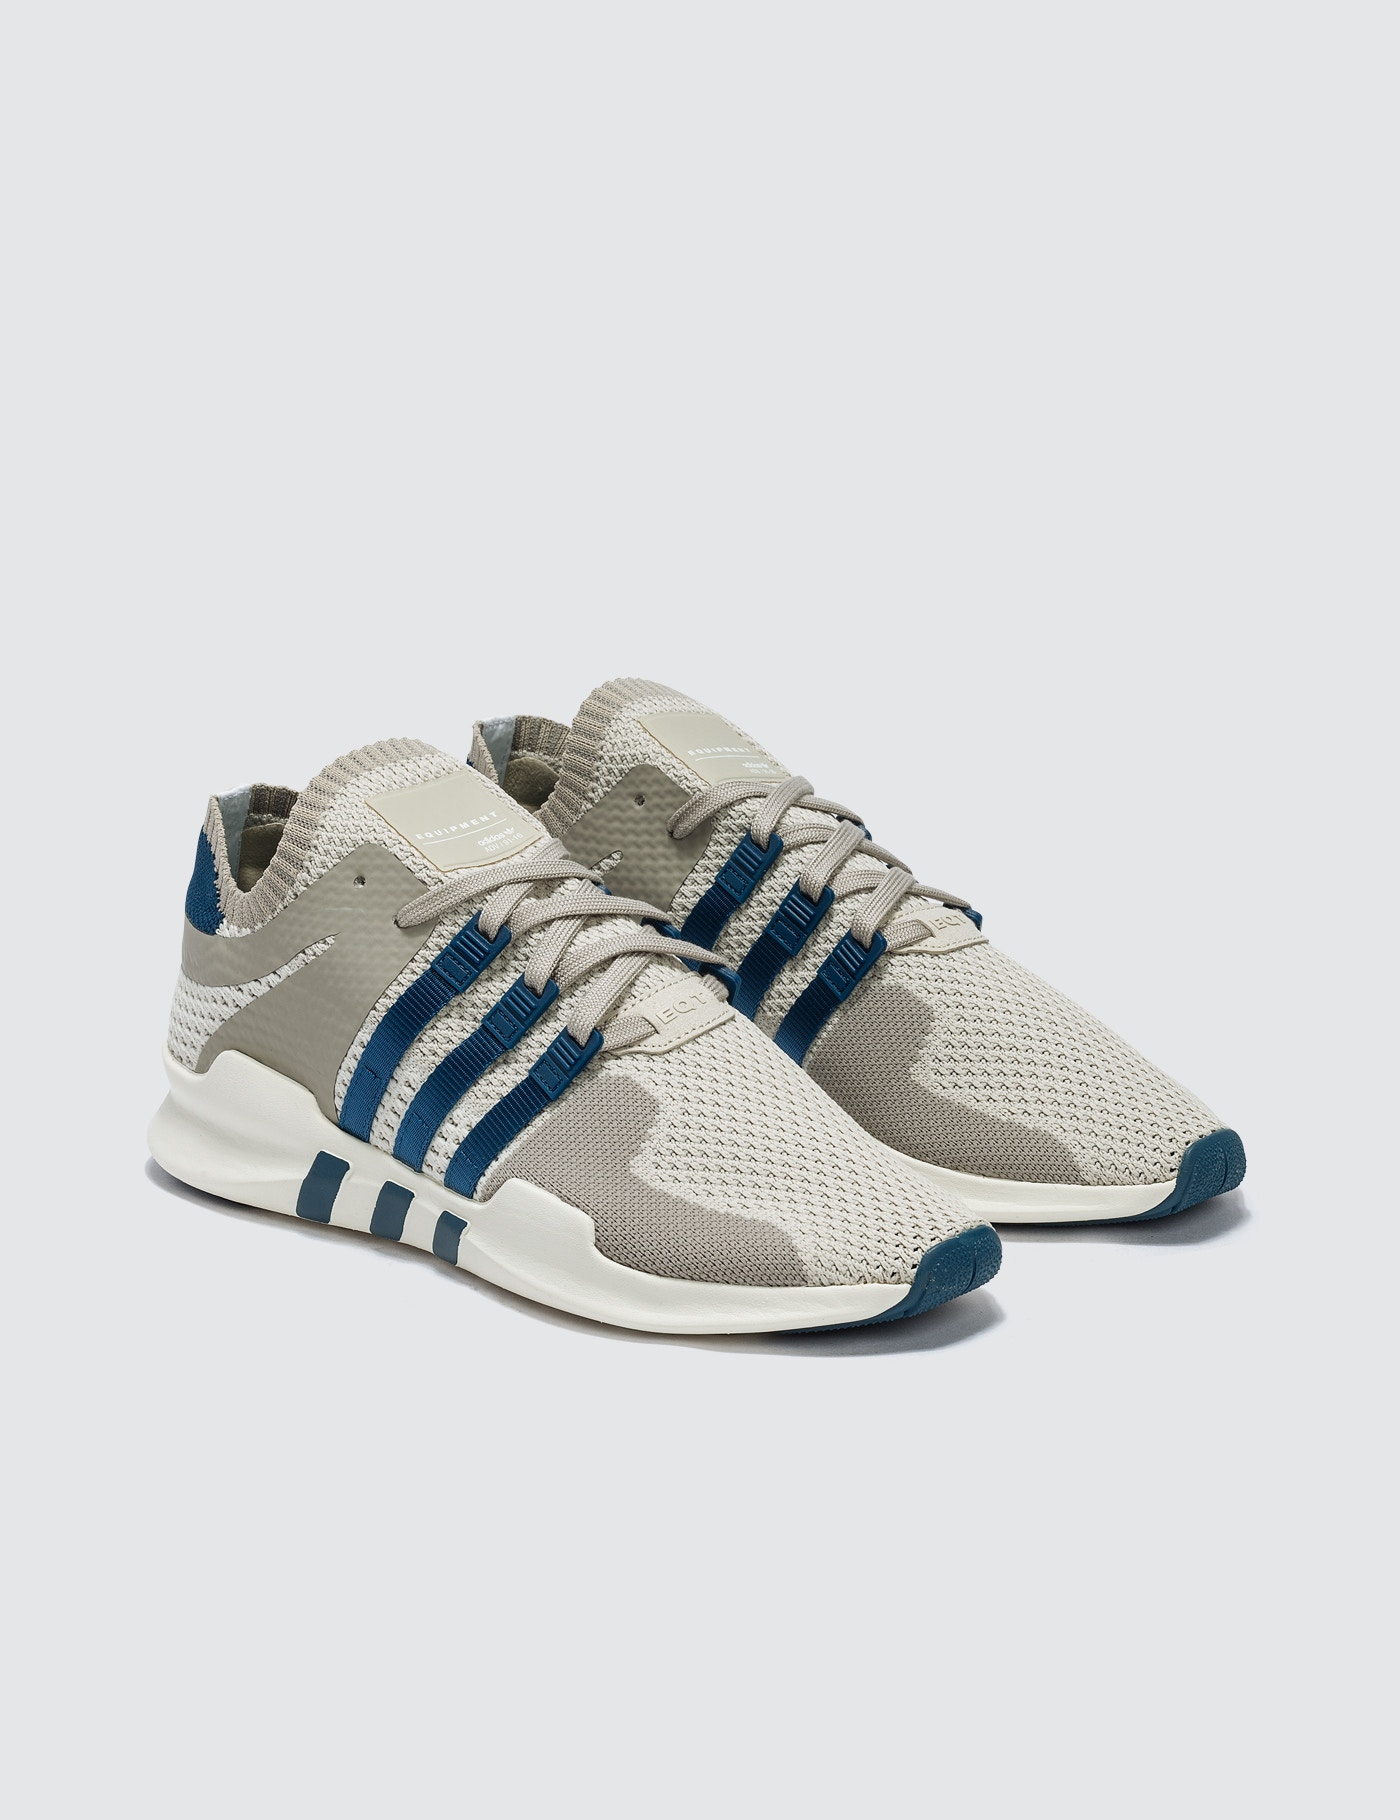 huge discount ef8e2 75f15 EQT Support ADV Primeknit, Adidas Originals